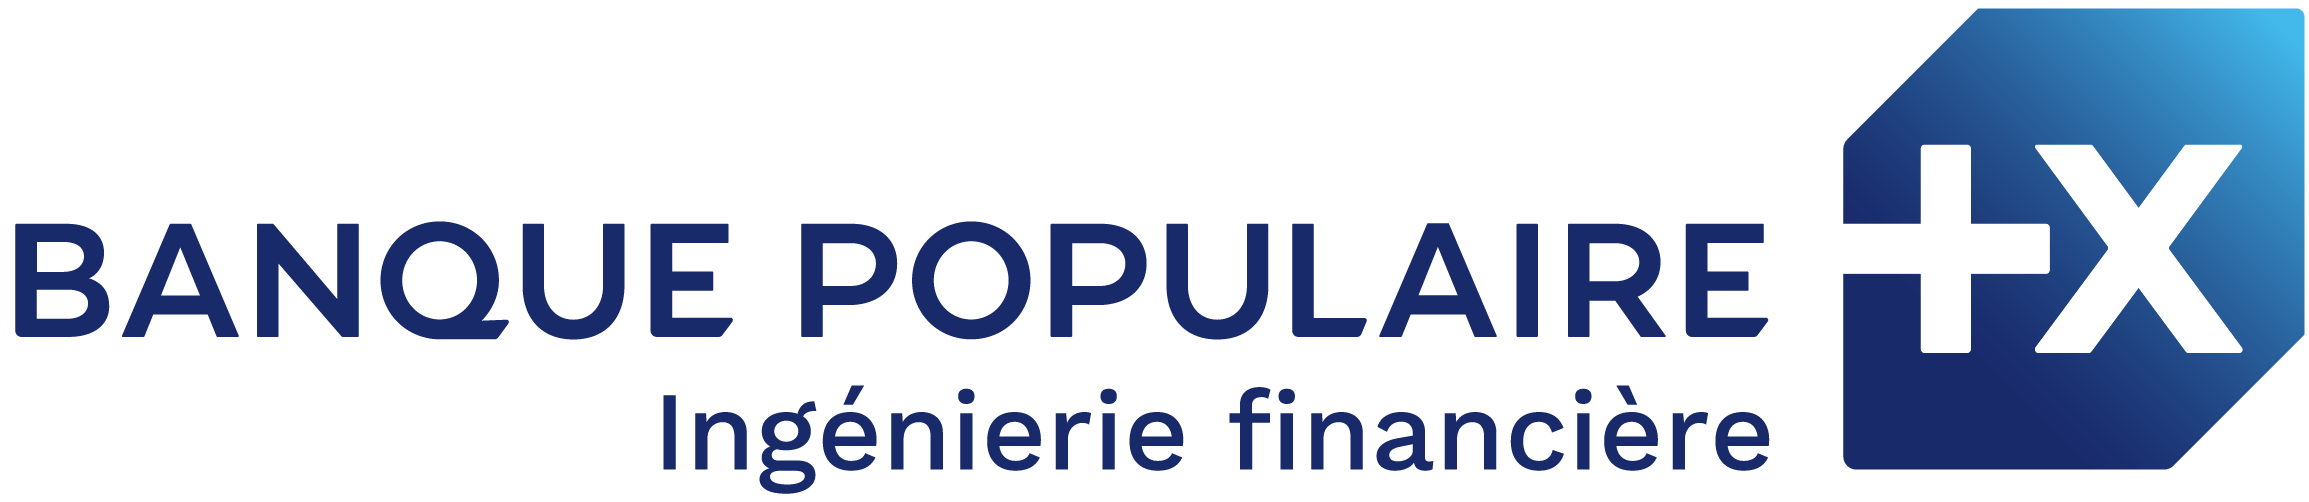 OUEST INGENIERIE FINANCIERE